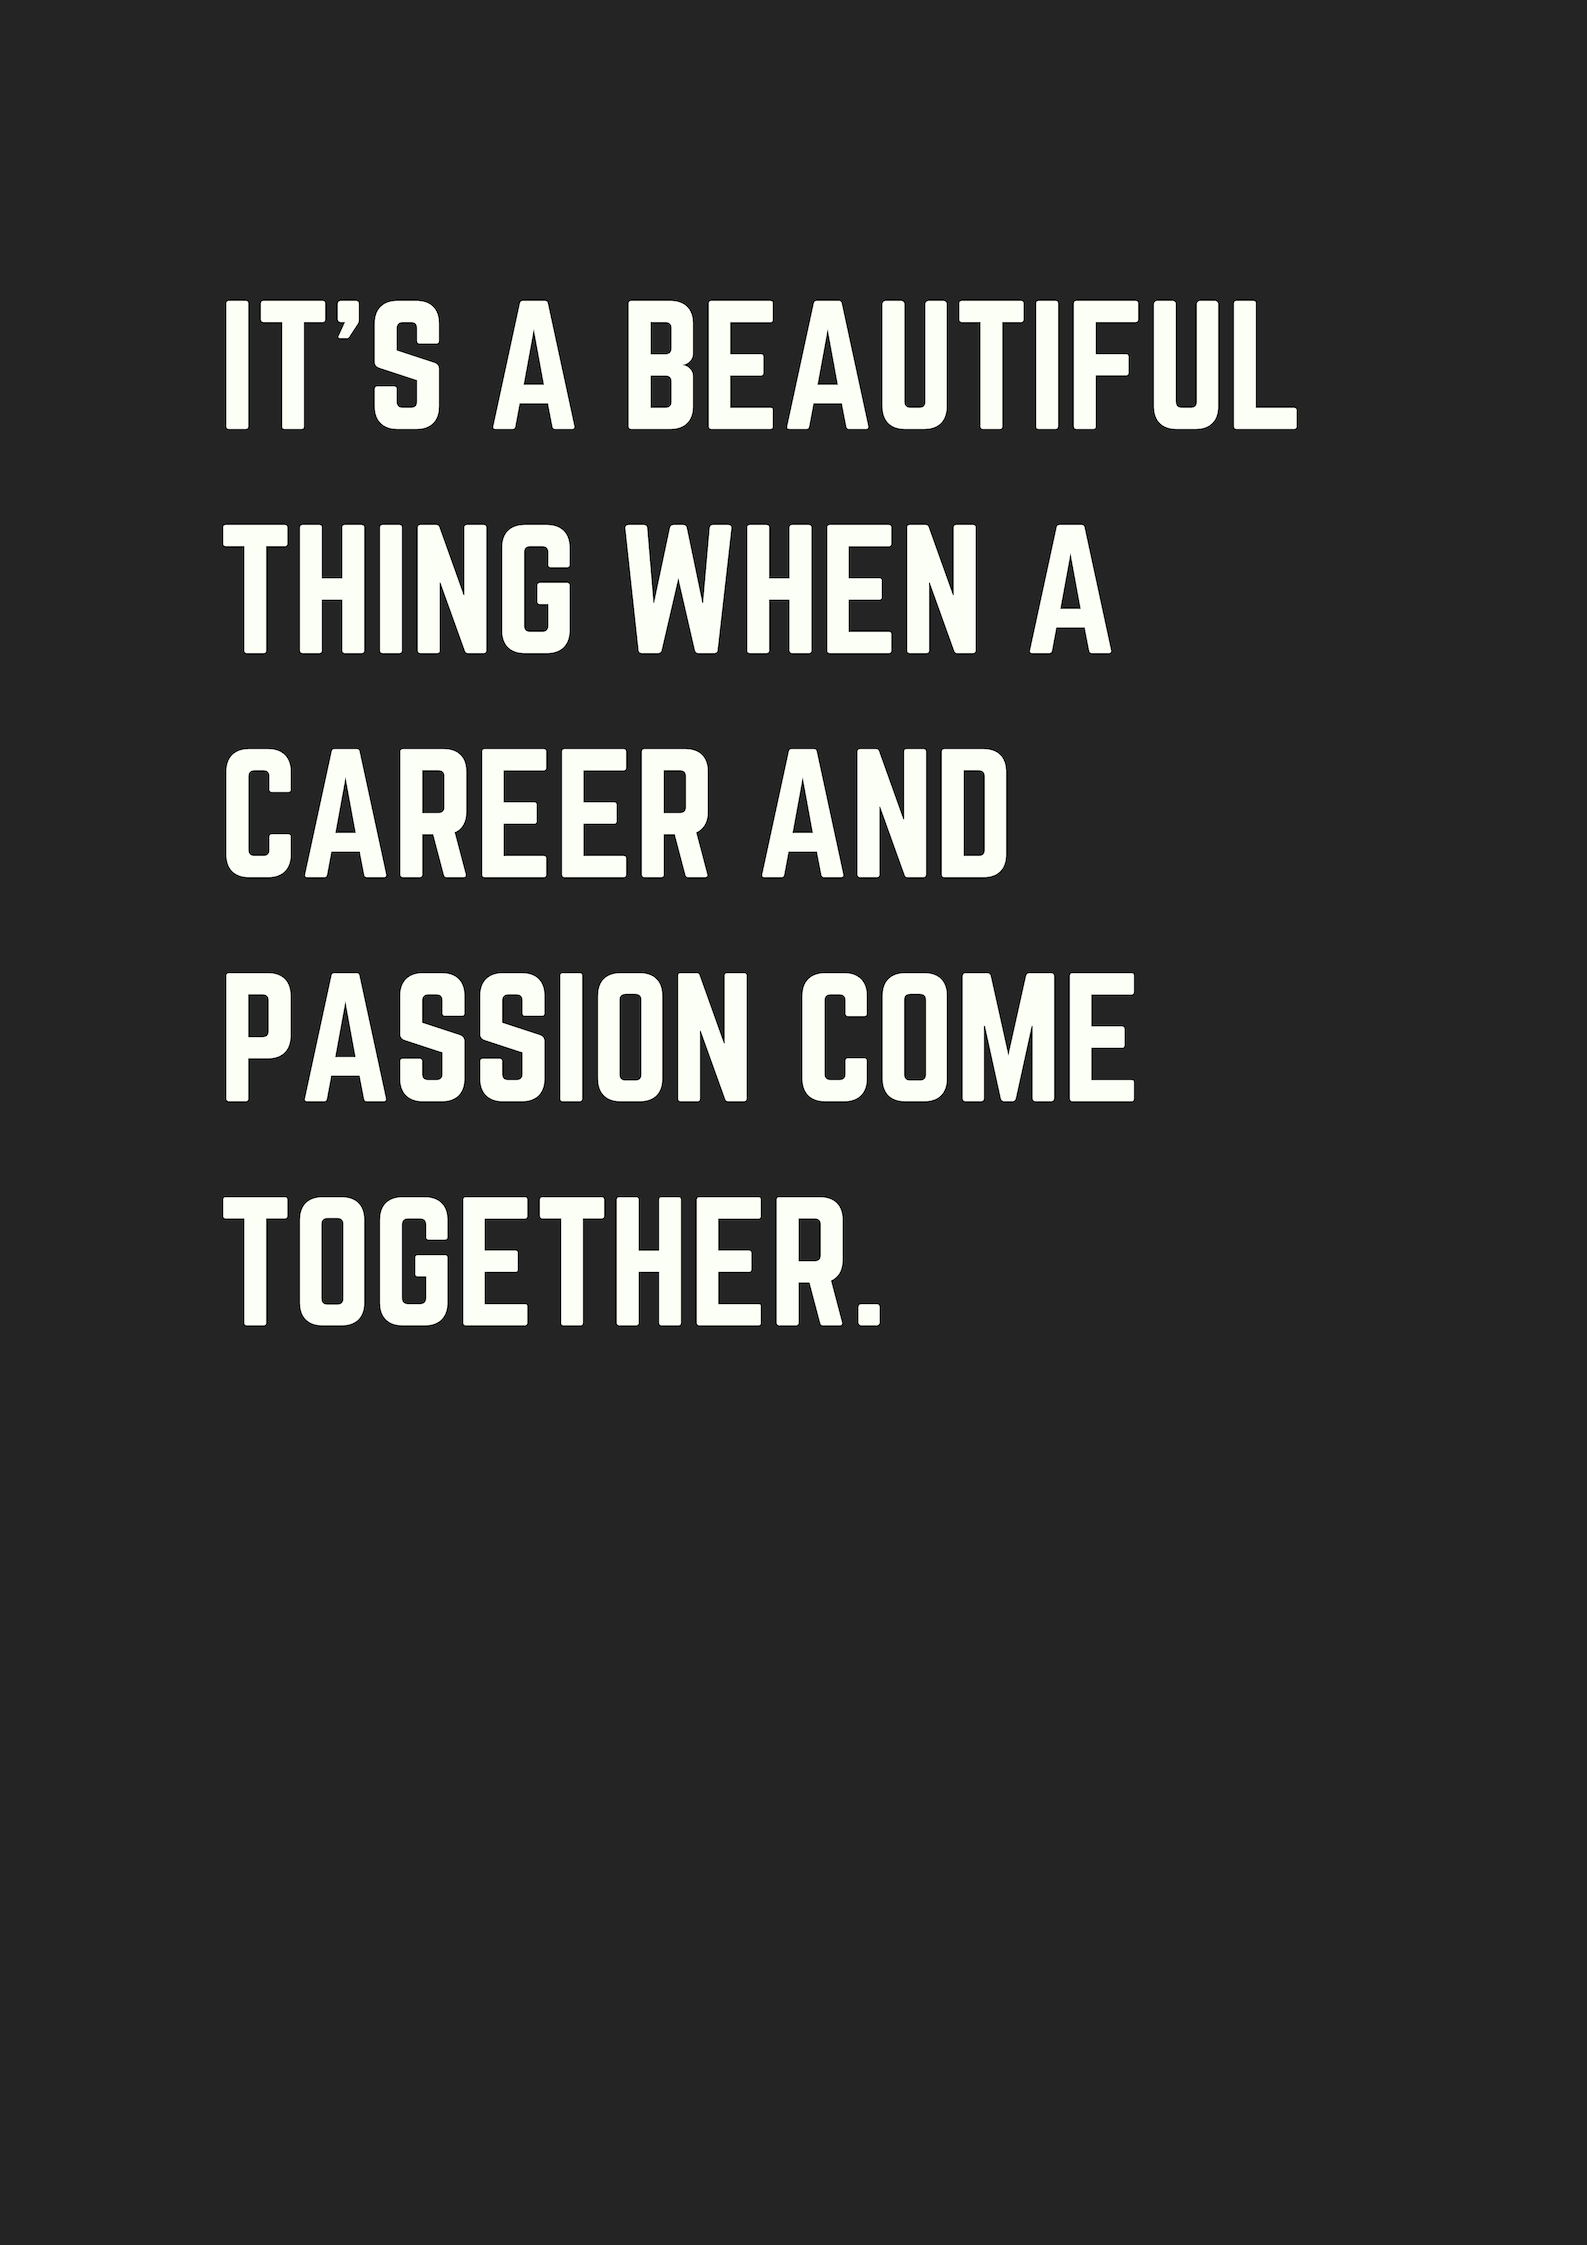 20 Black White Career Quotes Career Quotes Inspirational Job Quotes Career Quotes